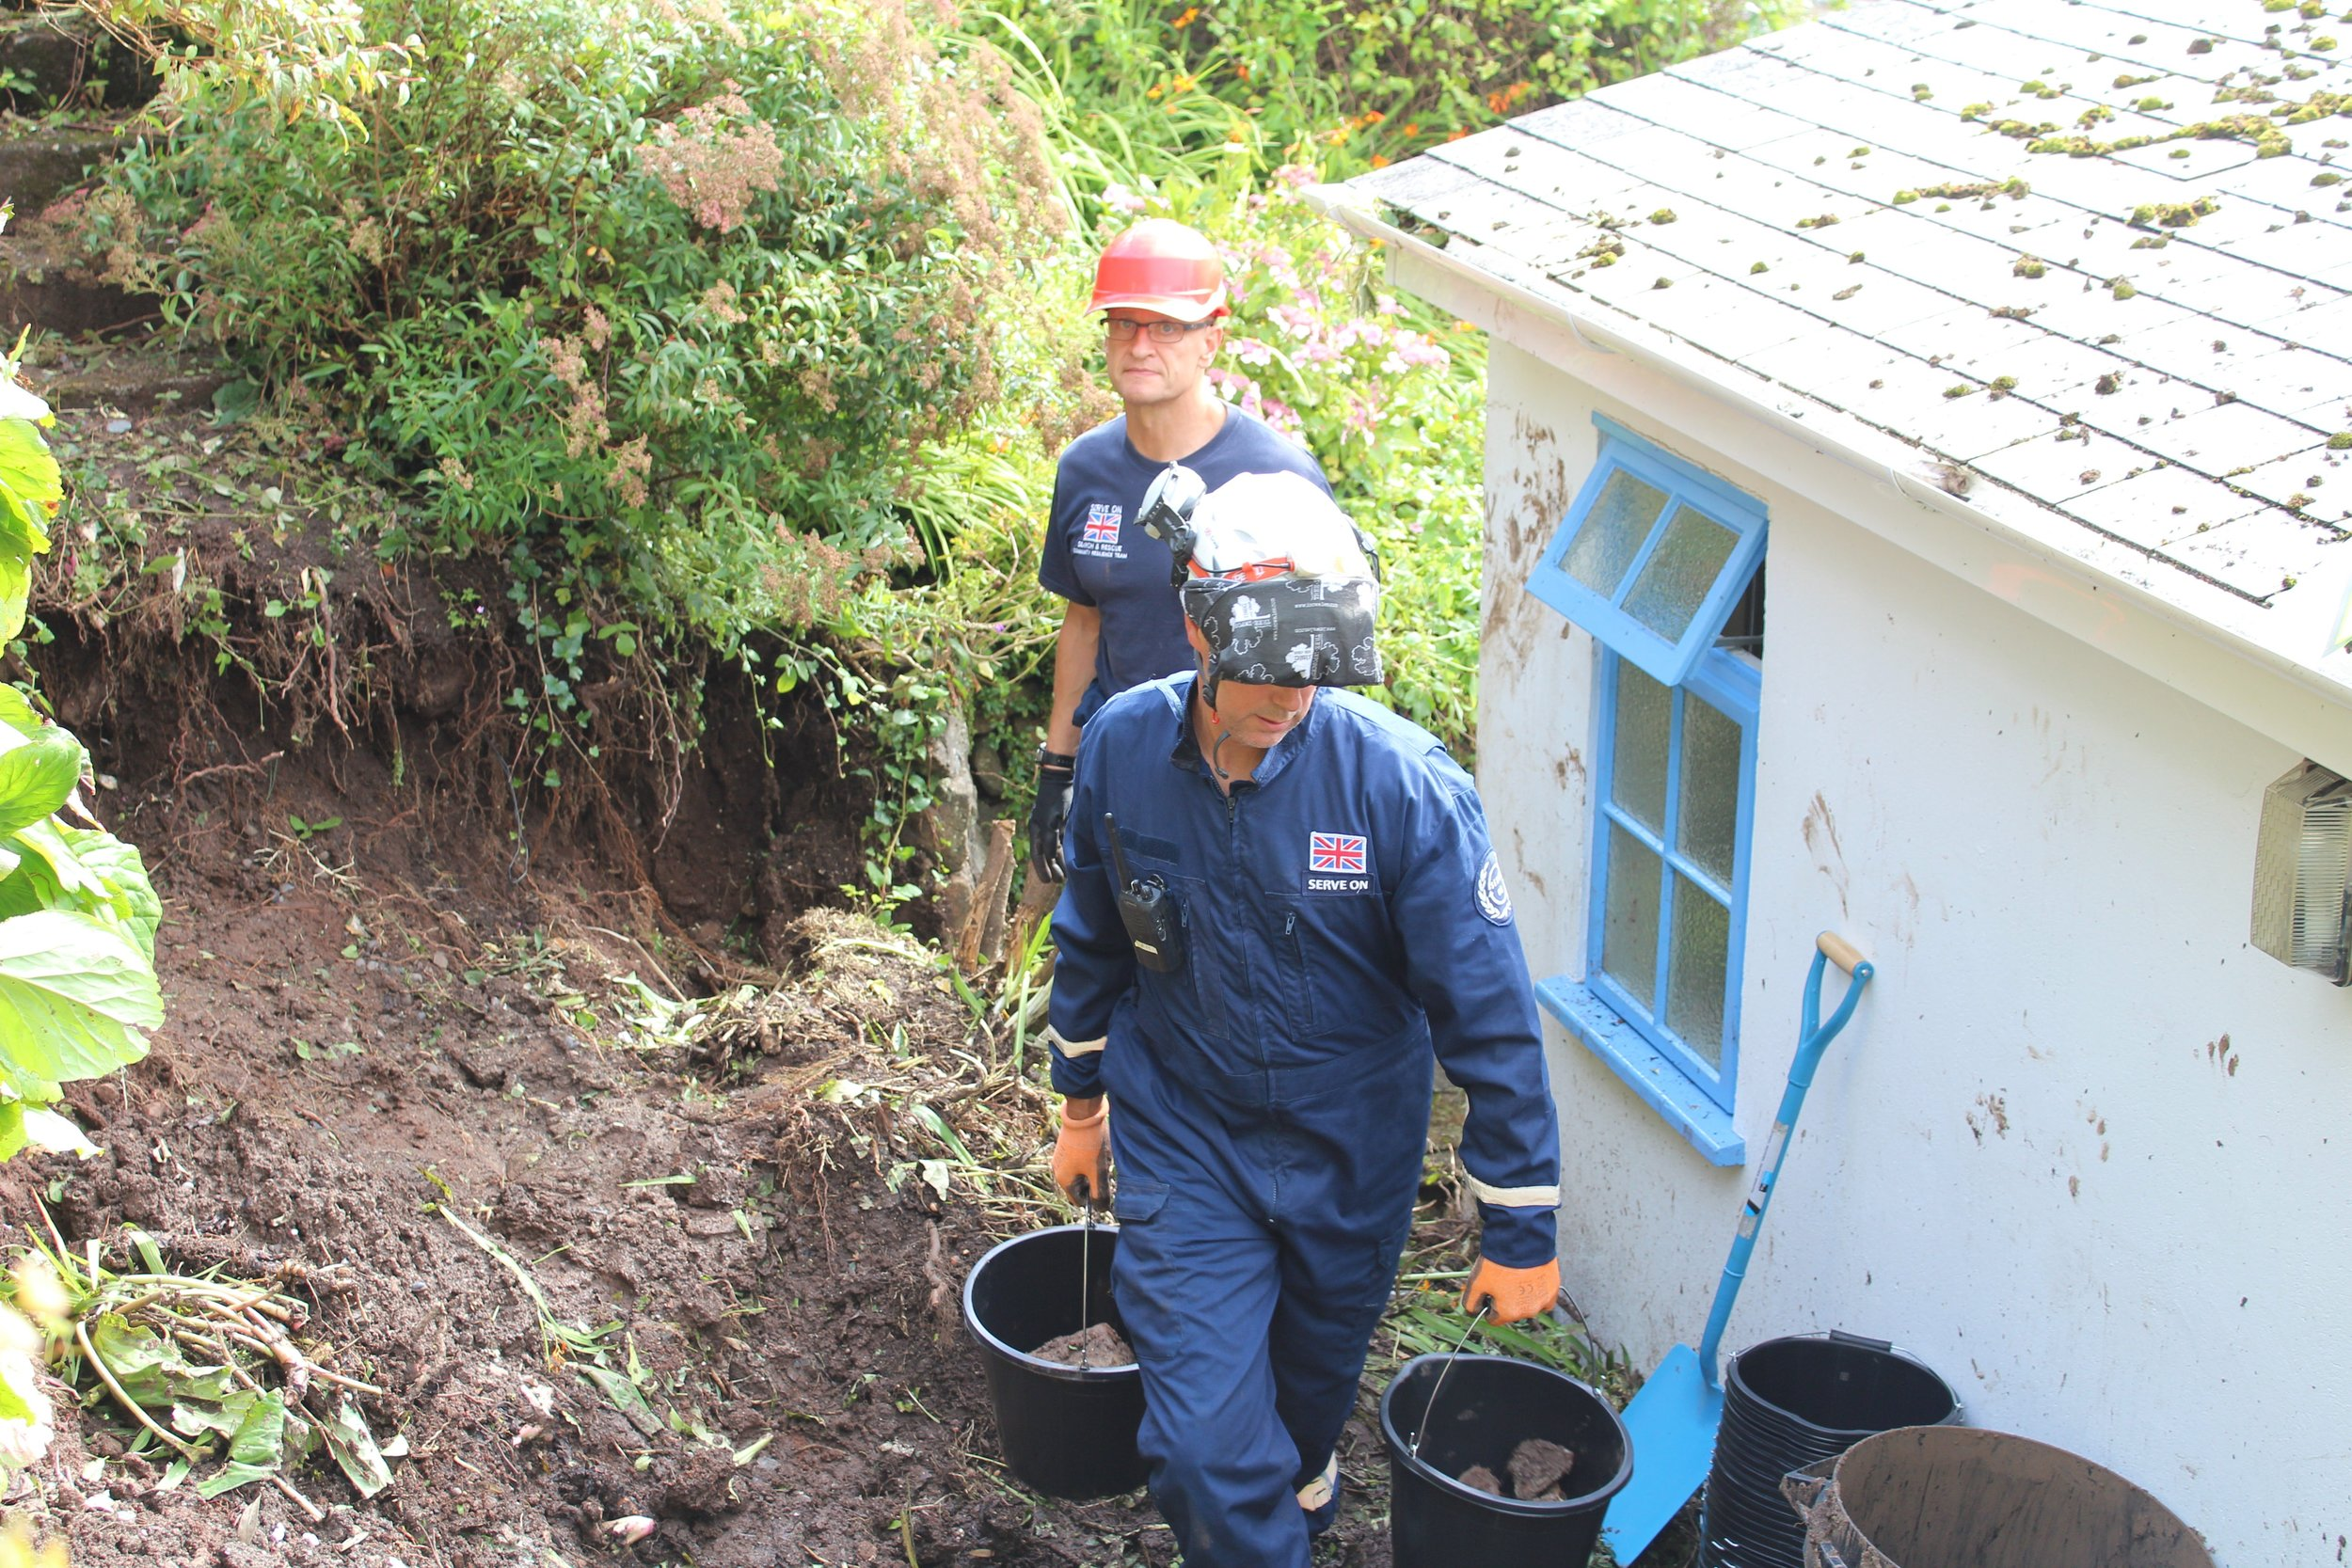 A Serve On team ov volunteers deployed to Coverack to help after flash floods there in 2017.